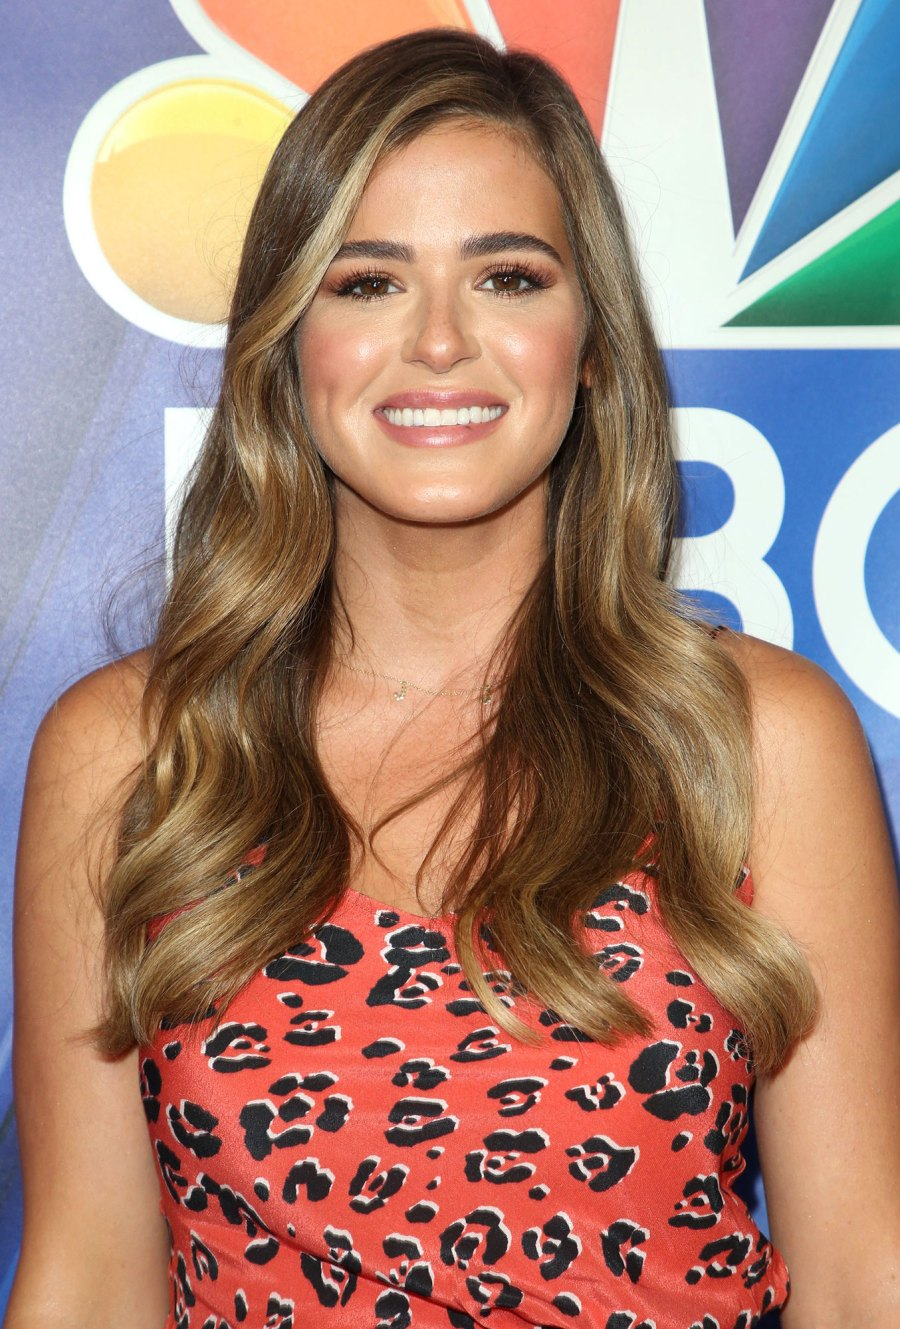 Mandatory Credit: Photo by MediaPunch/Shutterstock (10357846ar) JoJo Fletcher Bachelor Nation Rallies Around Michelle Money After Daughter Brielle Accident